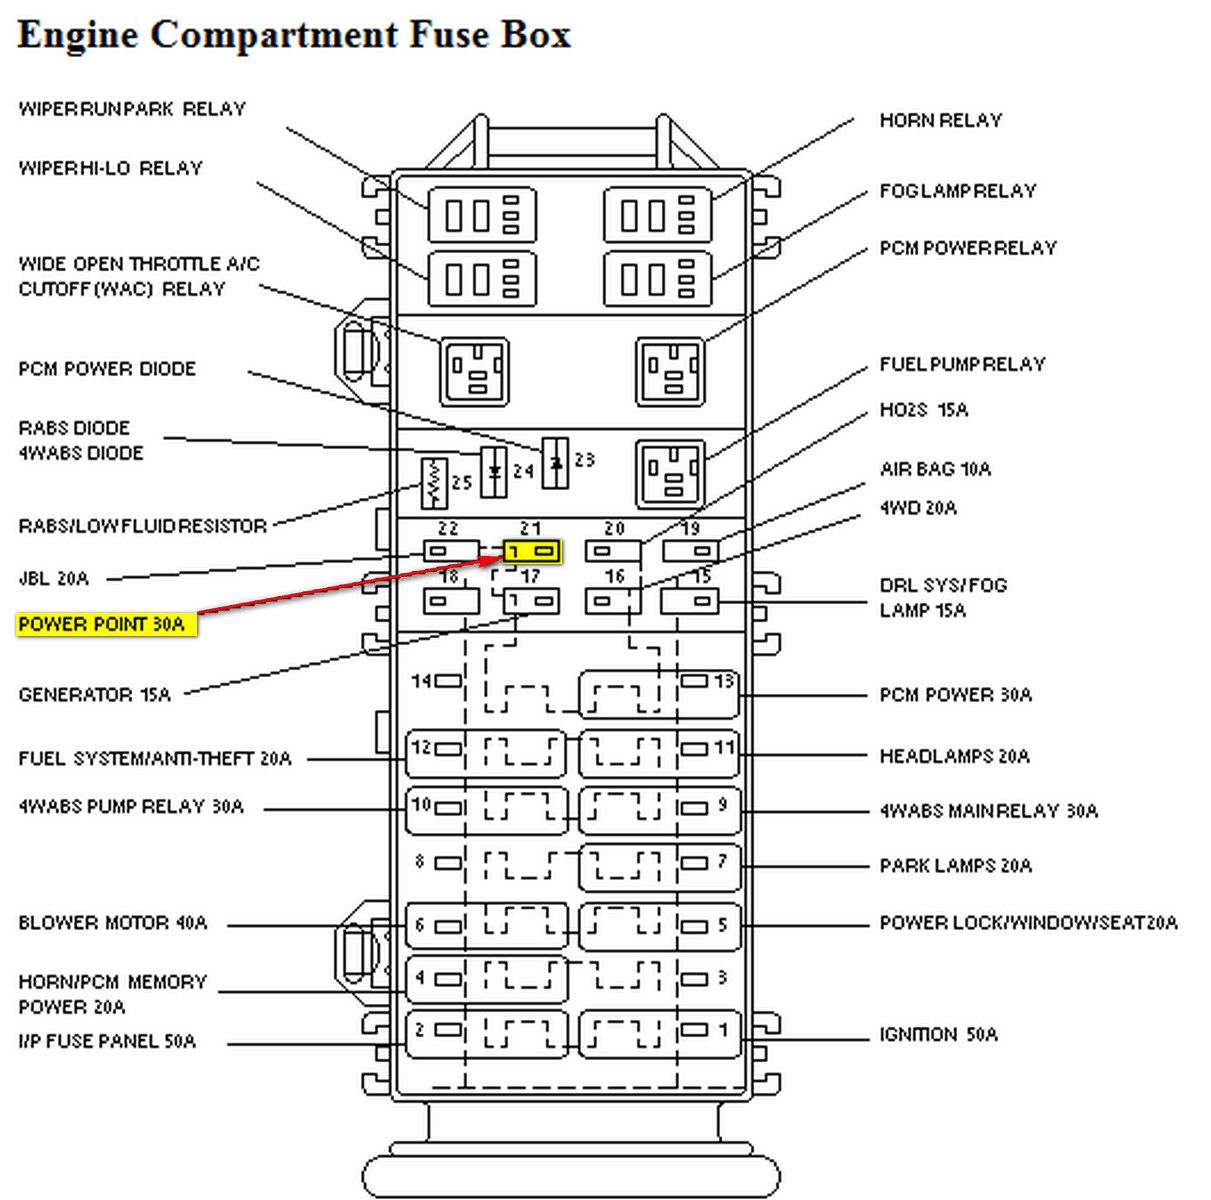 8a55967da7ae1bd251b795845886bd24 2002 ford ranger fuse diagram 1997 ford ranger fuse box diagram 2012 ford edge fuse box diagram at pacquiaovsvargaslive.co